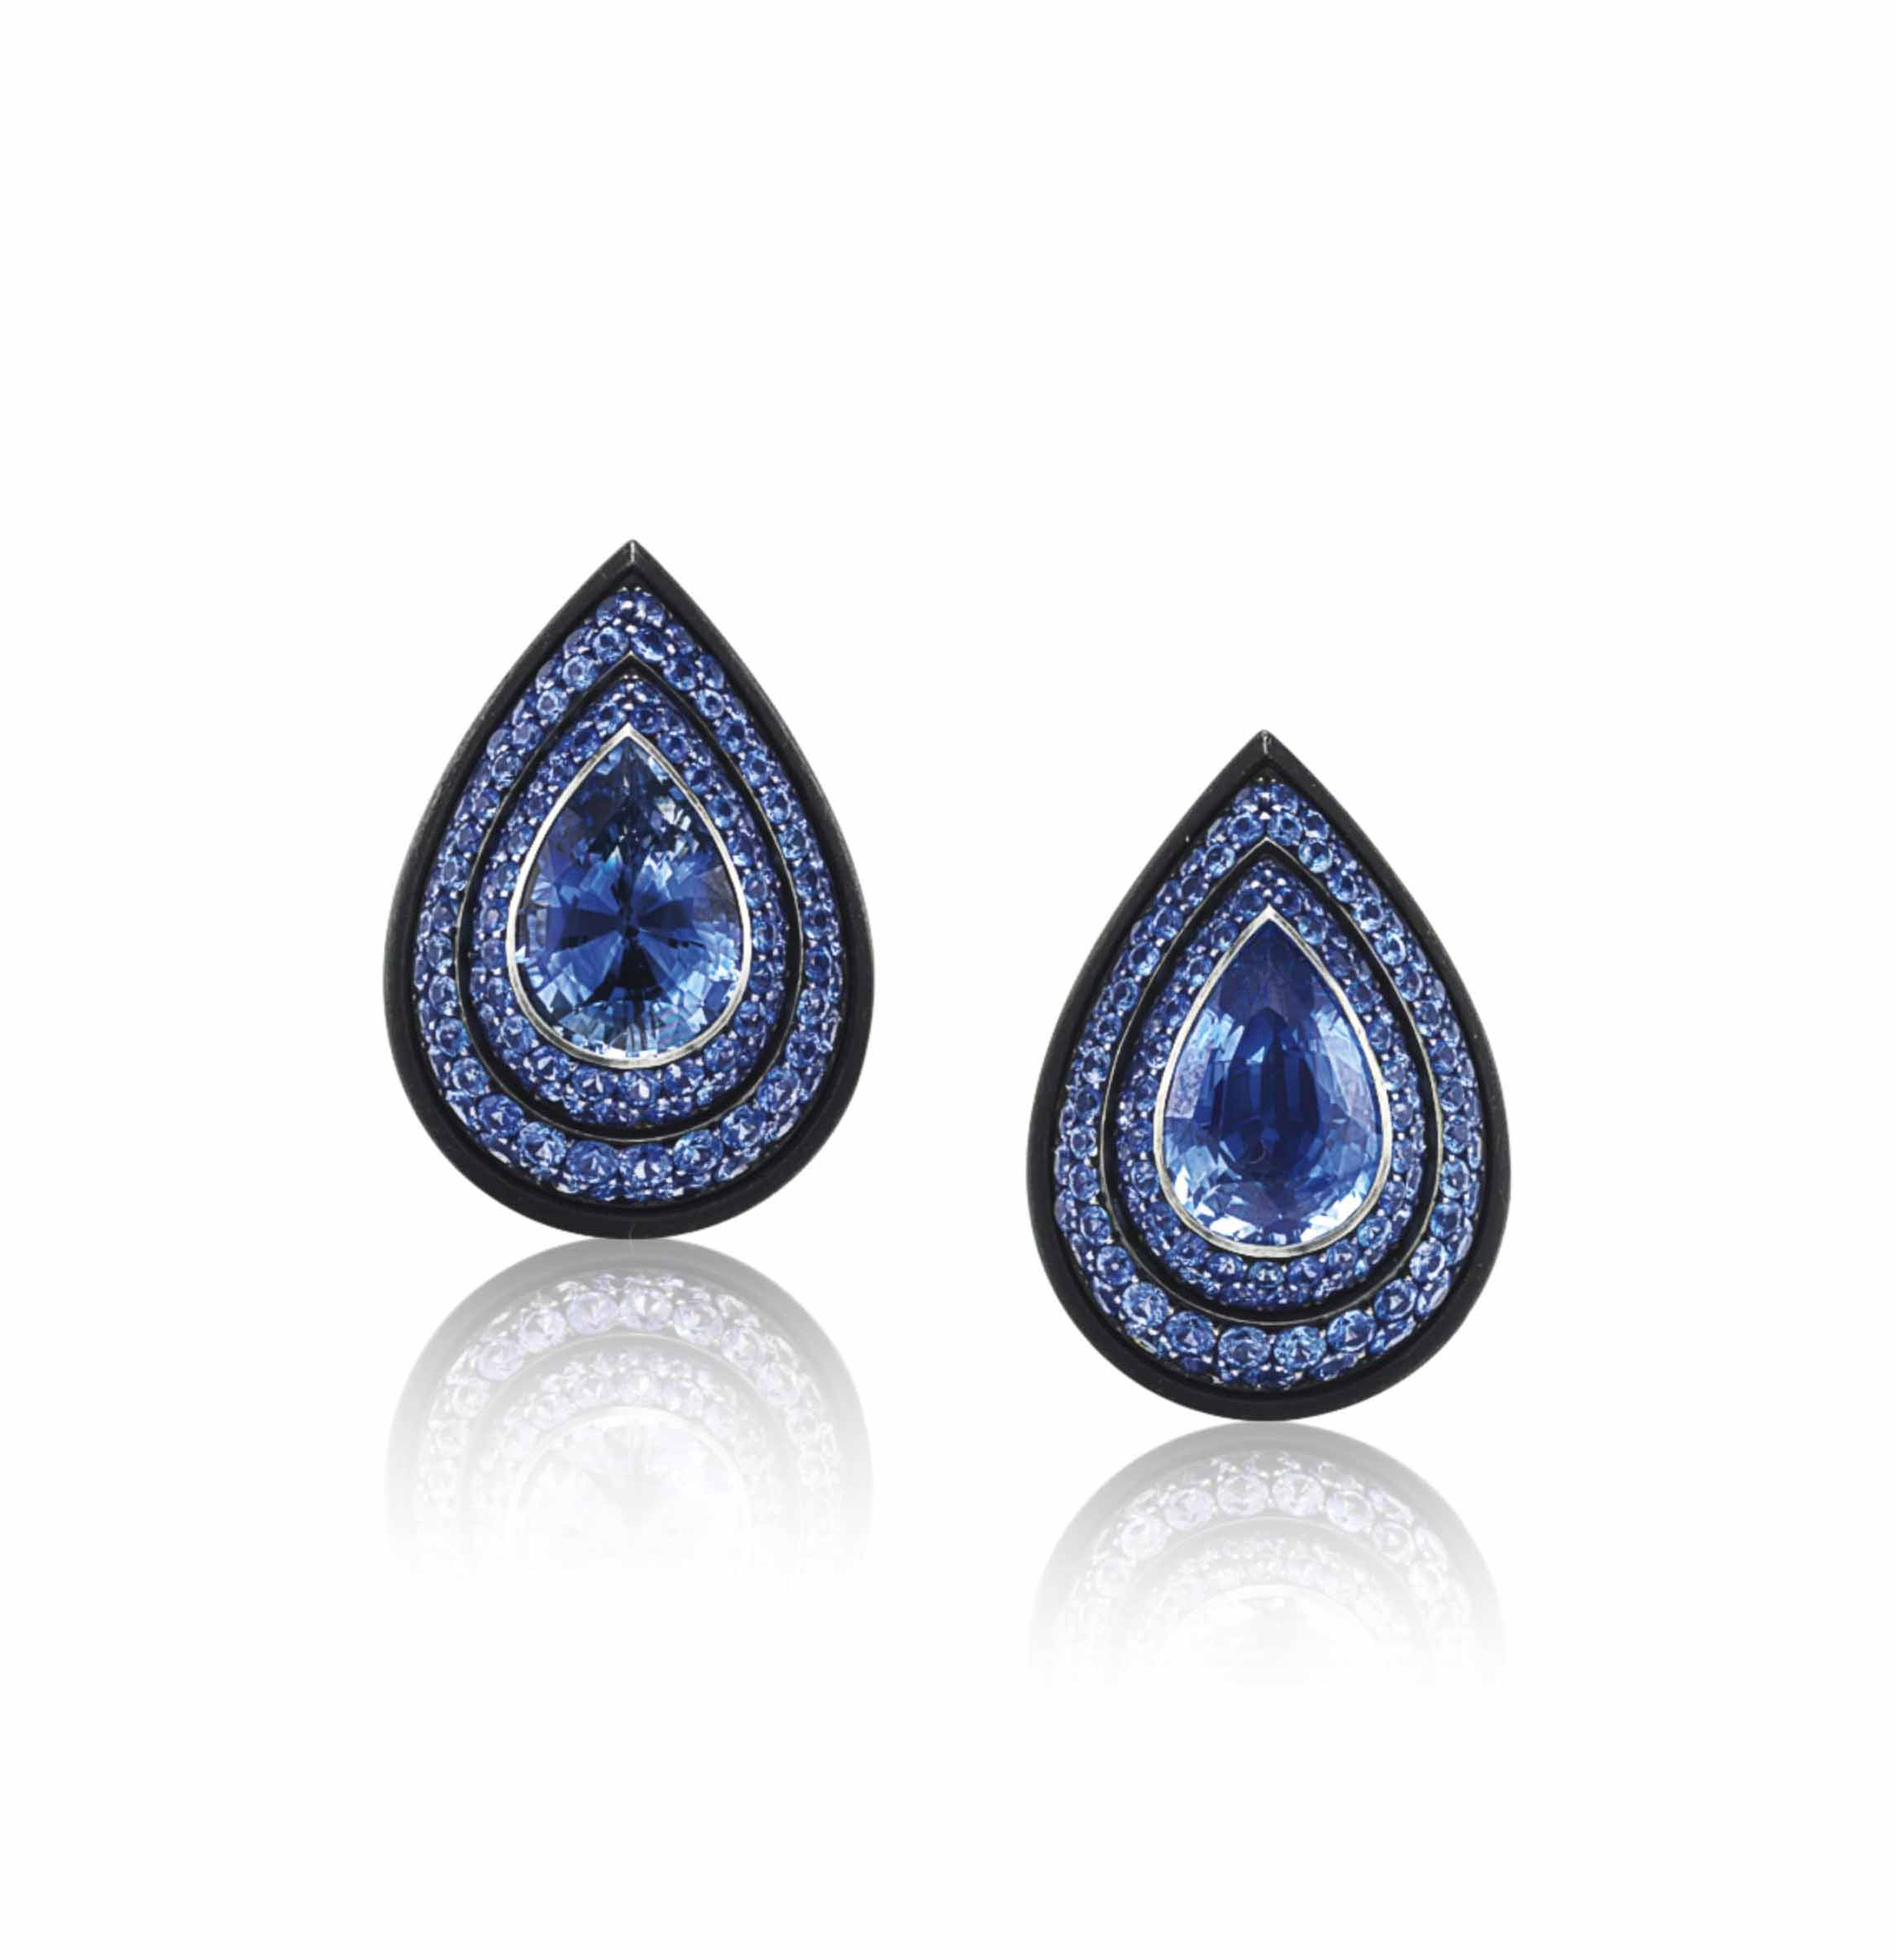 A PAIR OF SAPPHIRE EAR CLIPS, BY HEMMERLE